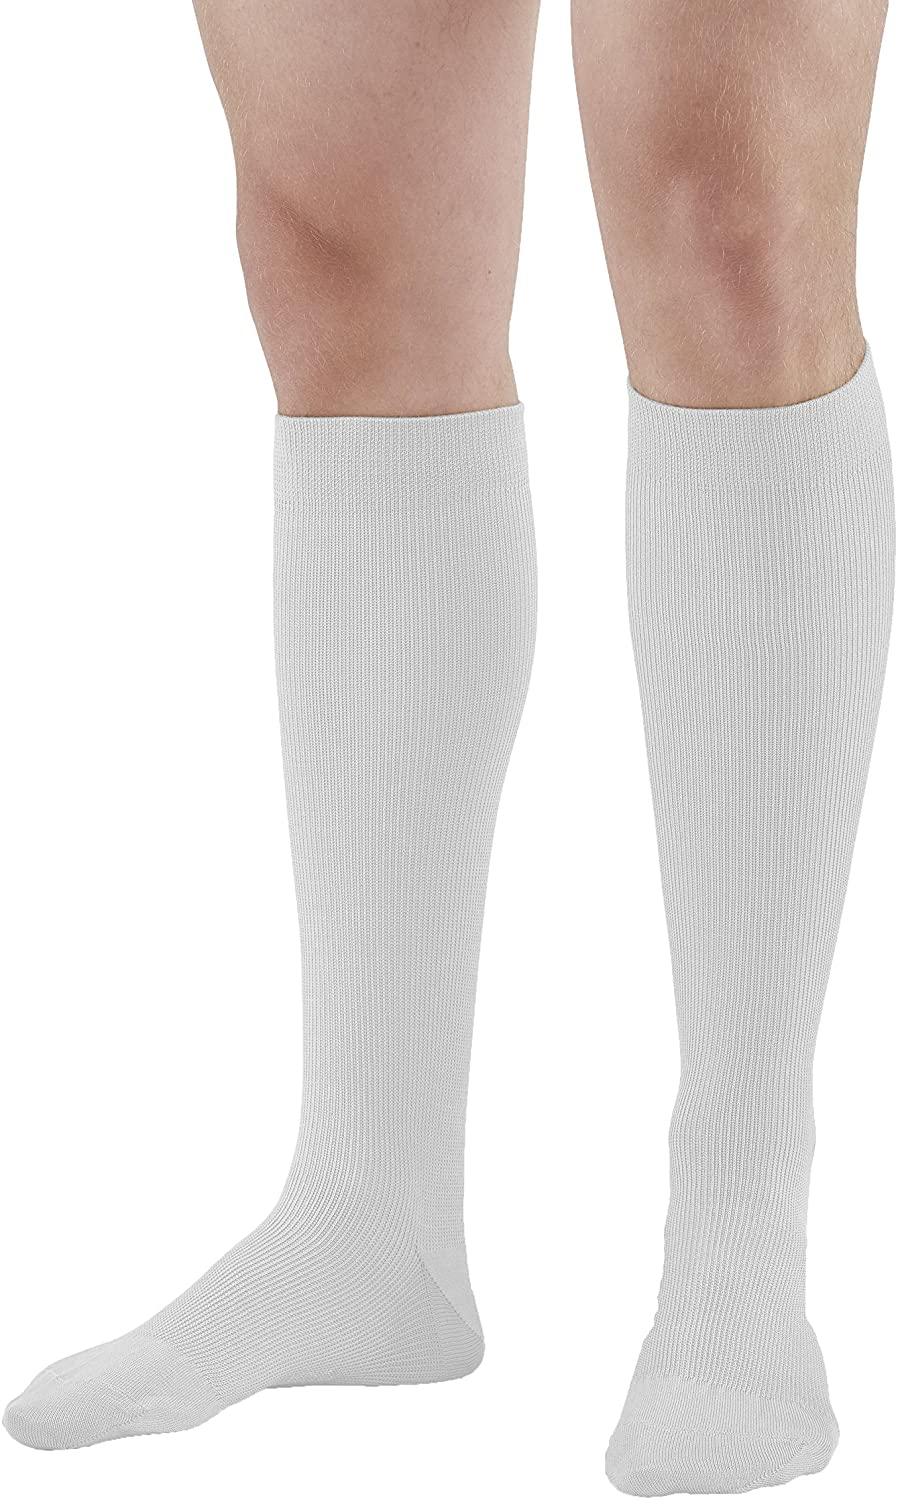 Ames Walker AW Style 132 Cotton 15 20mmHg Moderate Knee High Socks White Large